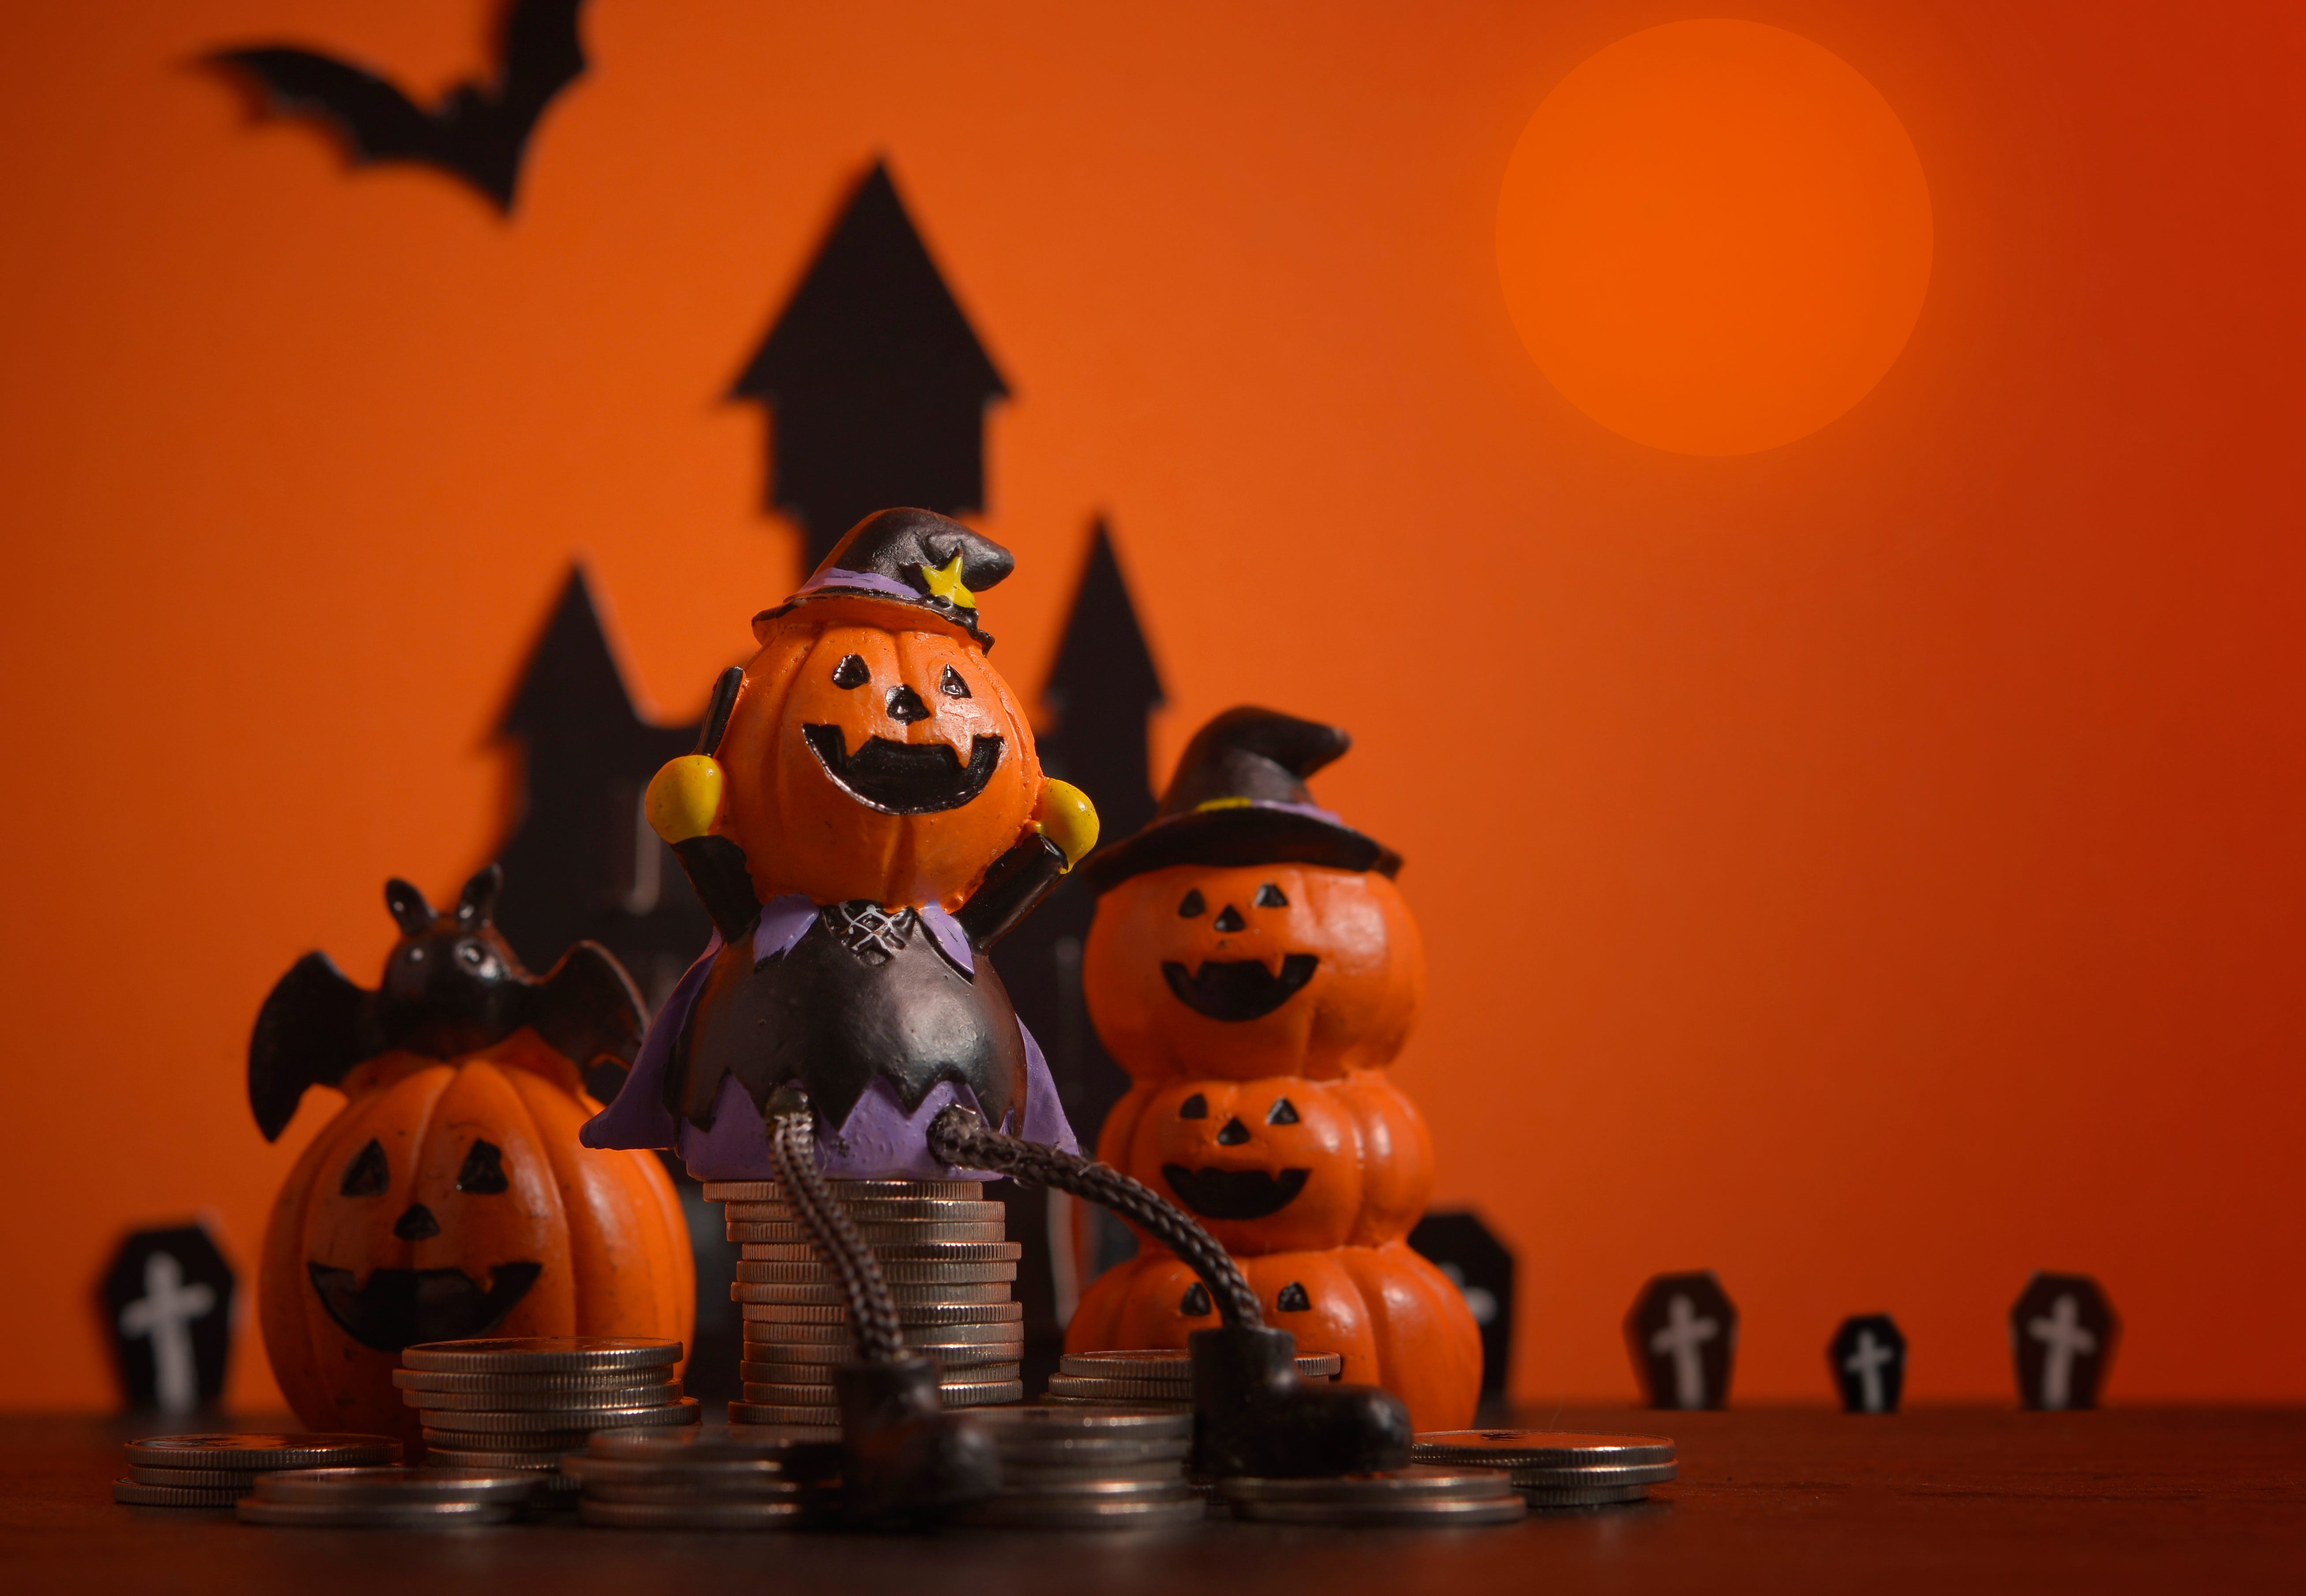 Ghosts and goblins come out this time of year. But it's financial demons that keep people up at night.